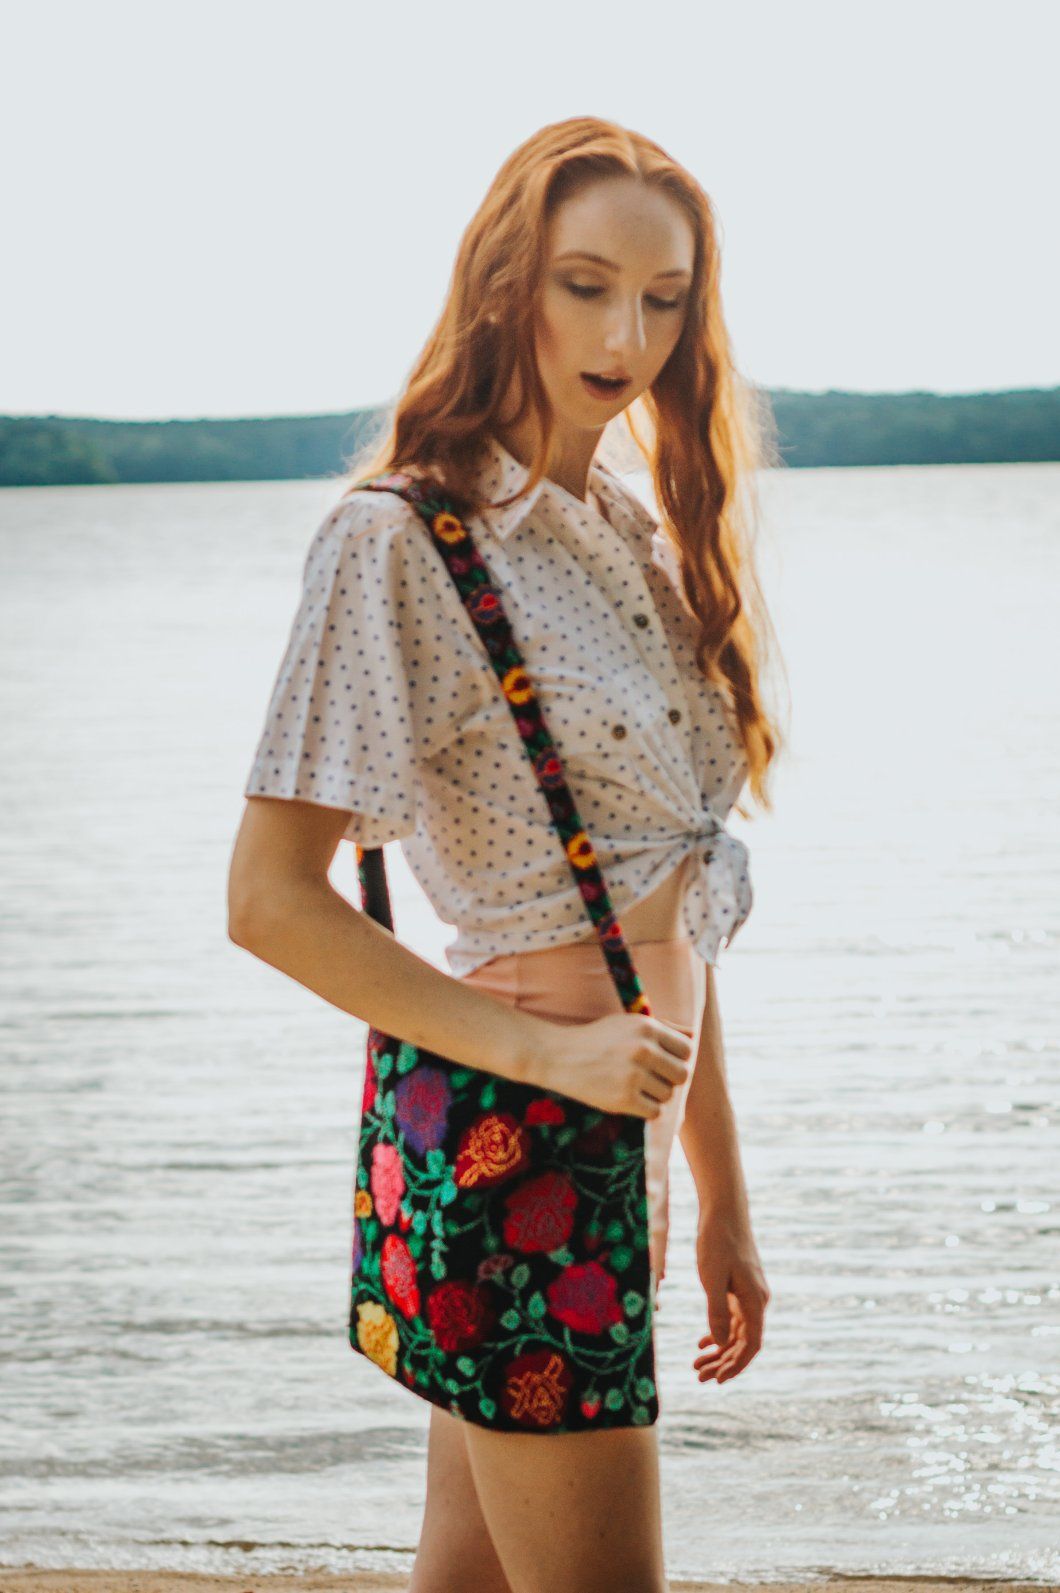 Rachael Pope Wearing The Block Vintage - Photos by Mikayla Christiansen